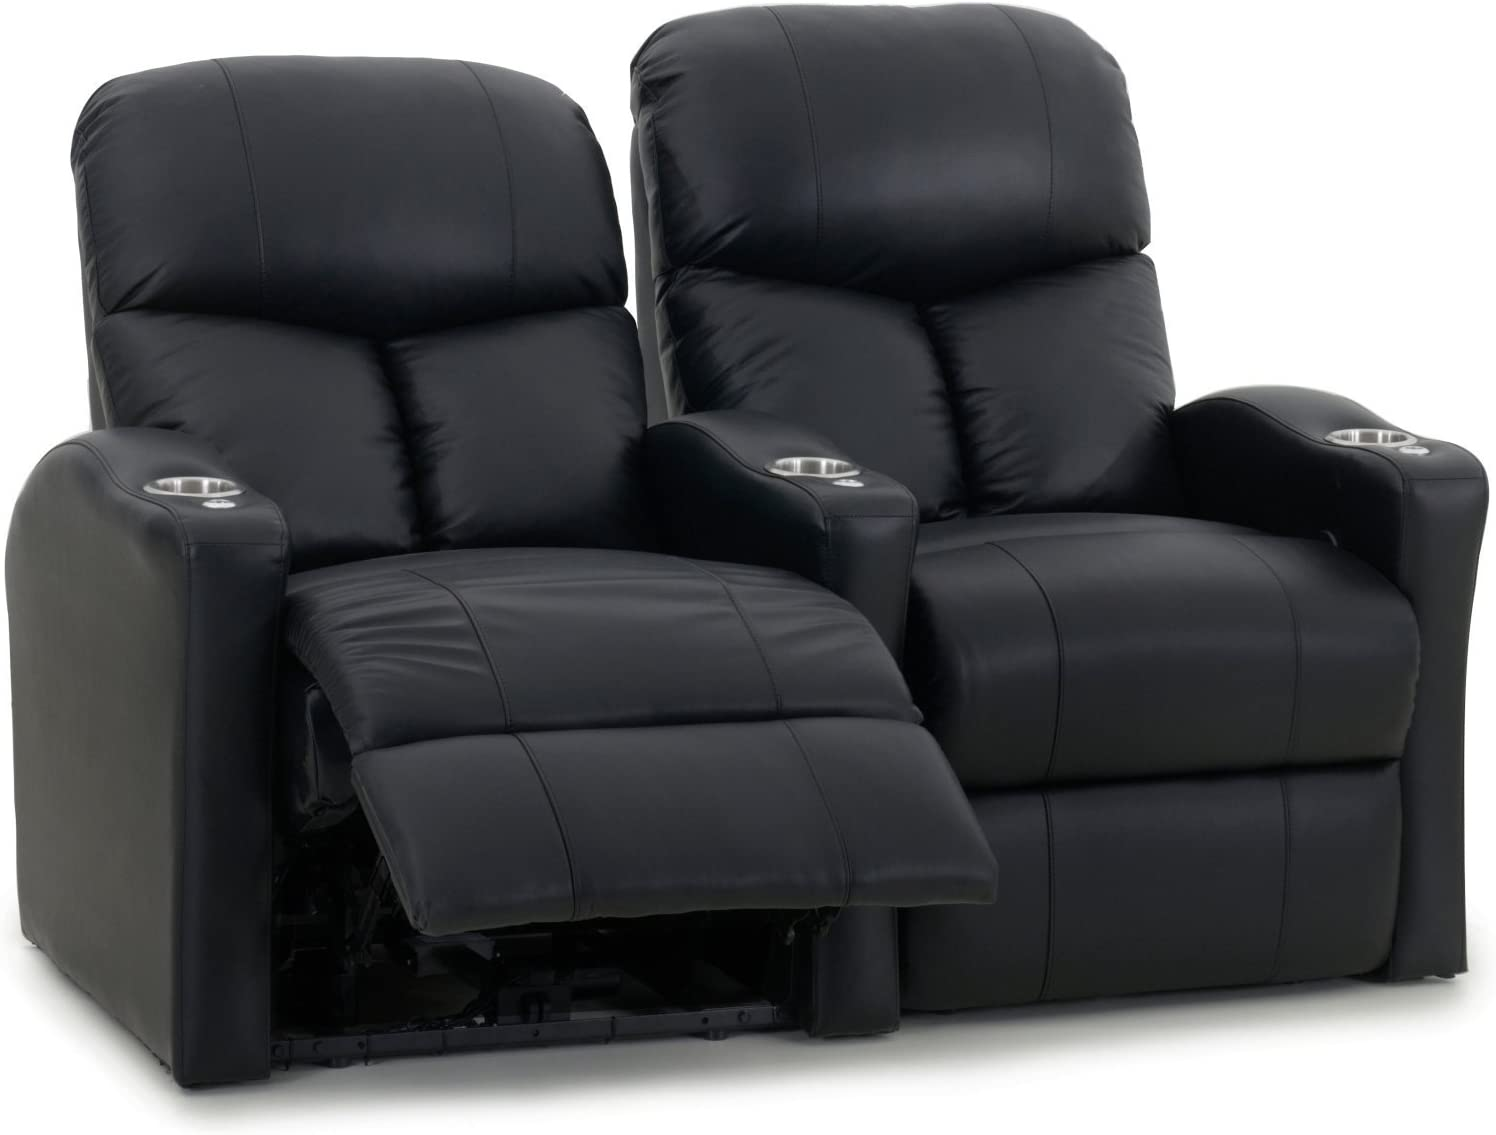 Octane Seating Octane Bolt XS400 Motorized Leather Home Theater Recliner Set (Row of 2)